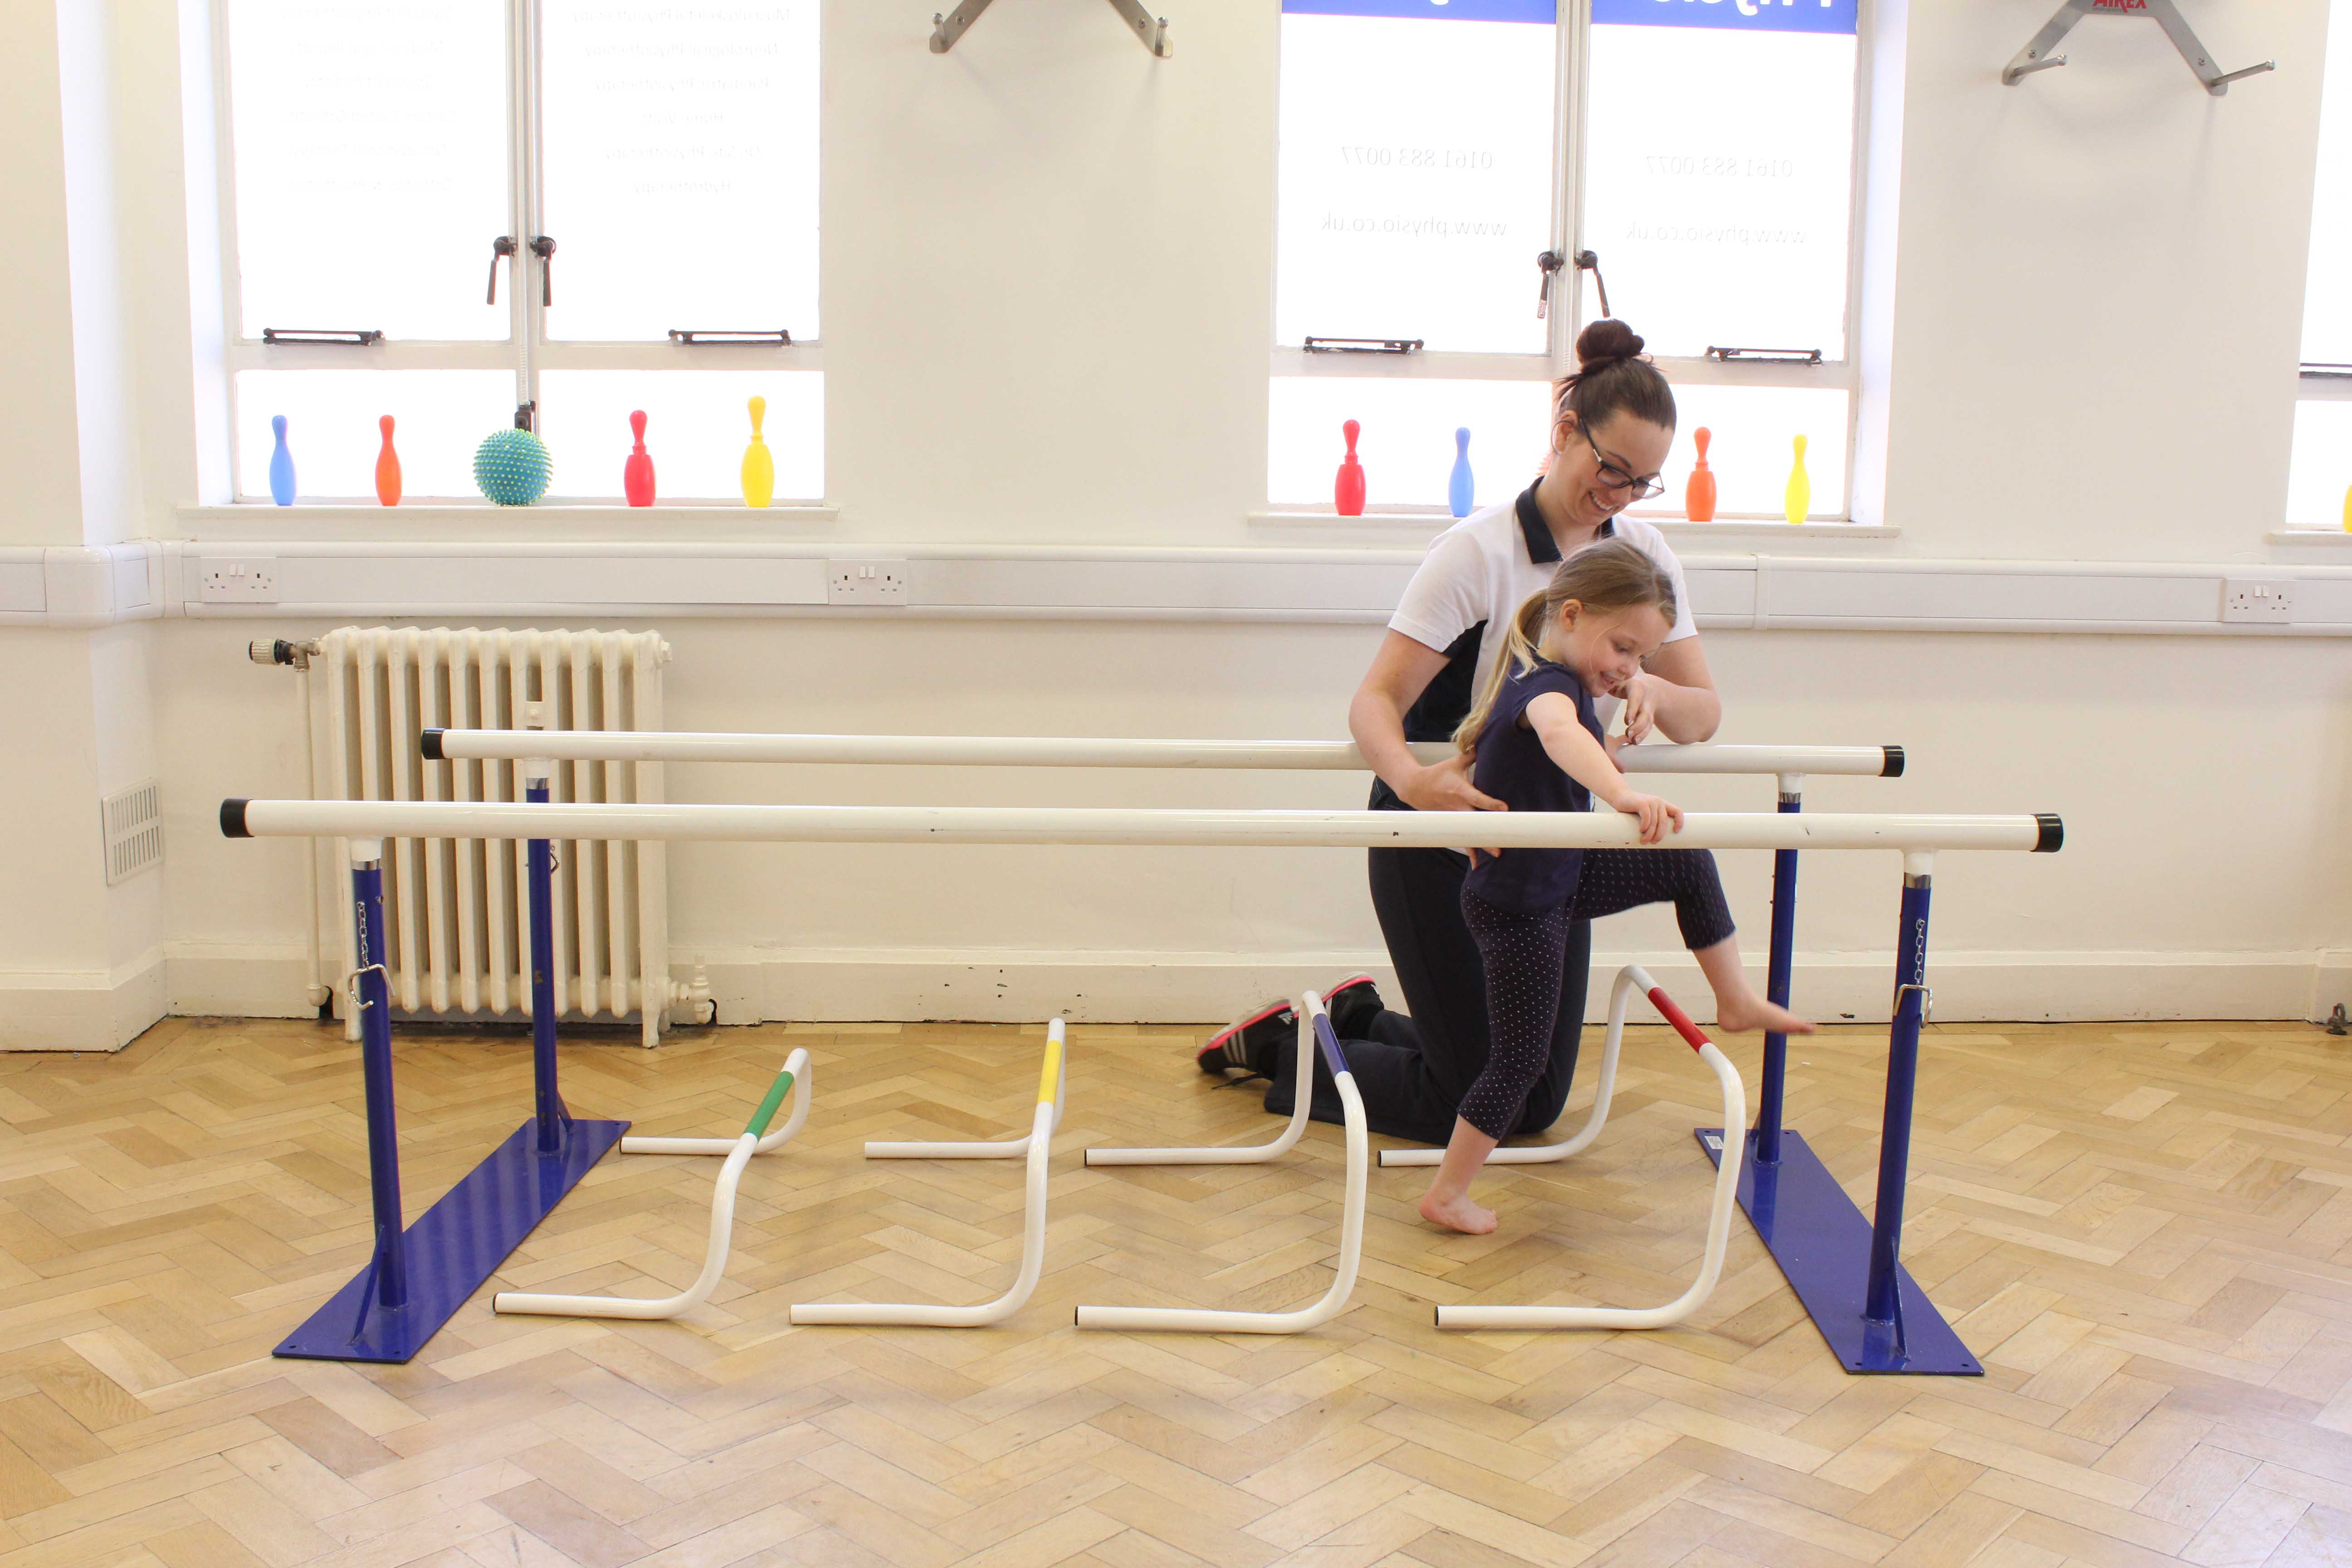 Gait re-education and mobility exercises between parallel bars, under supervision from a neurological physiotherapist